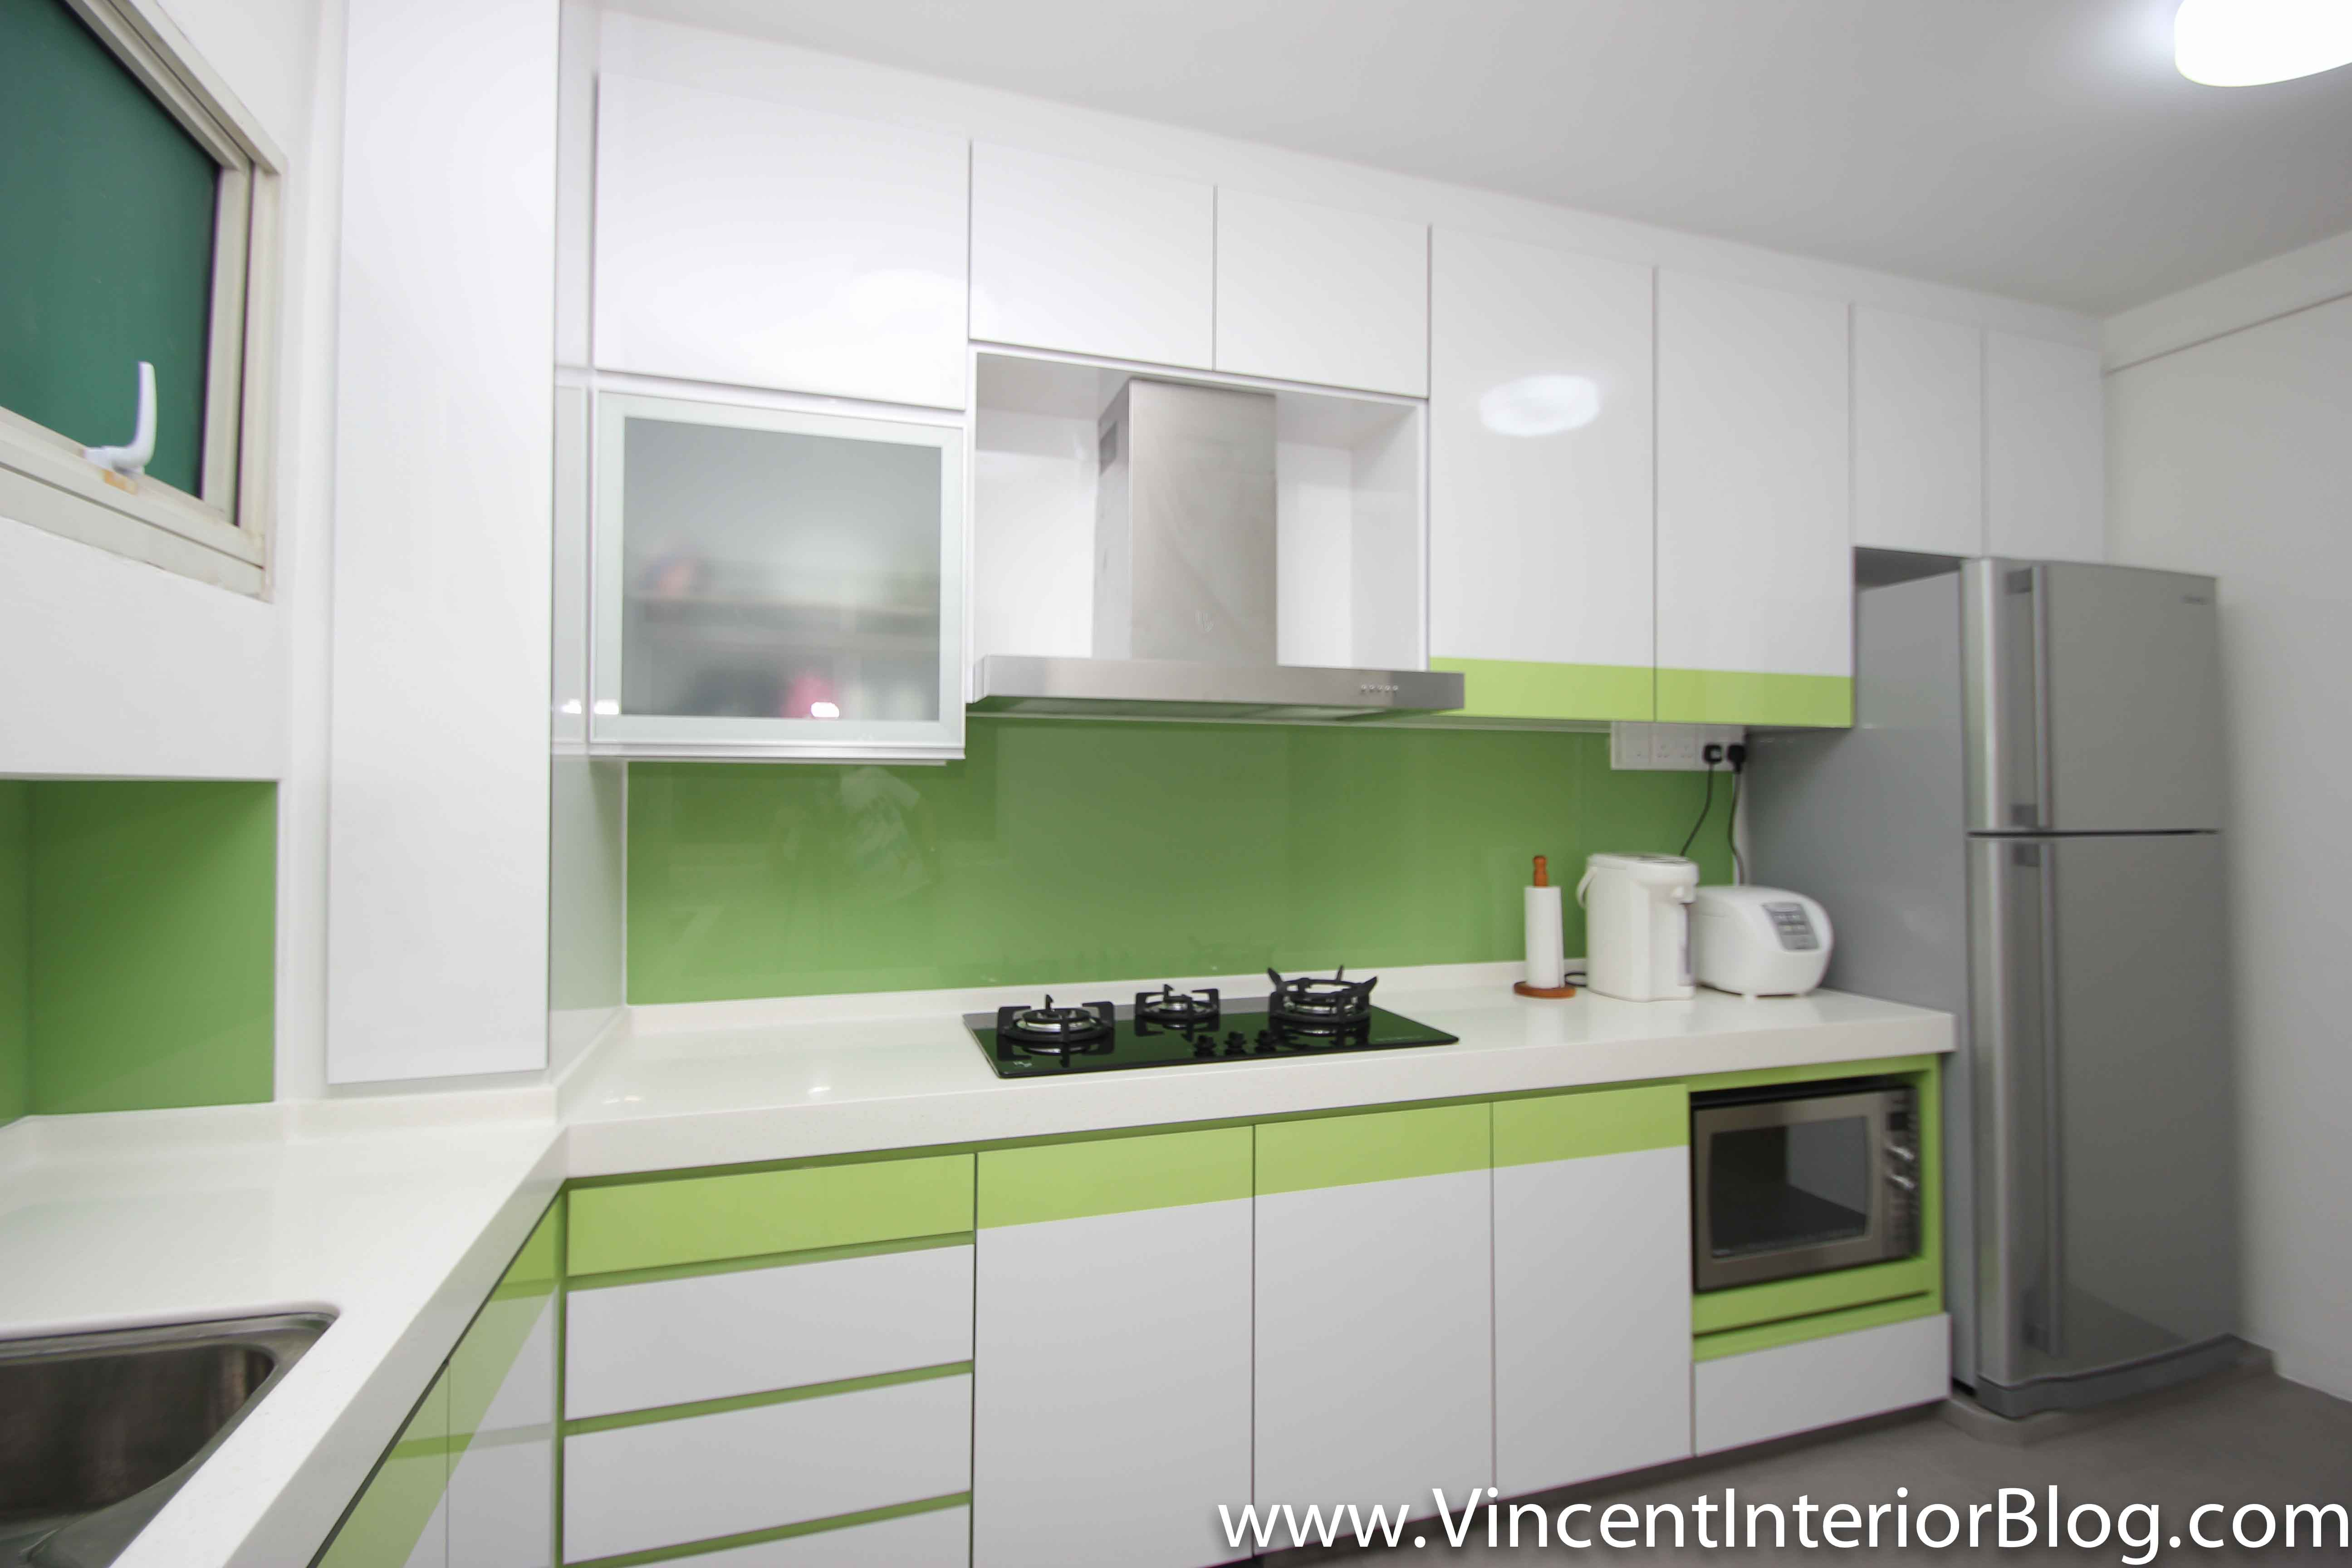 Uncategorized Kitchen Design Hdb punggol 4 room hdb renovation part 9 day 40 project completed kitchen 2